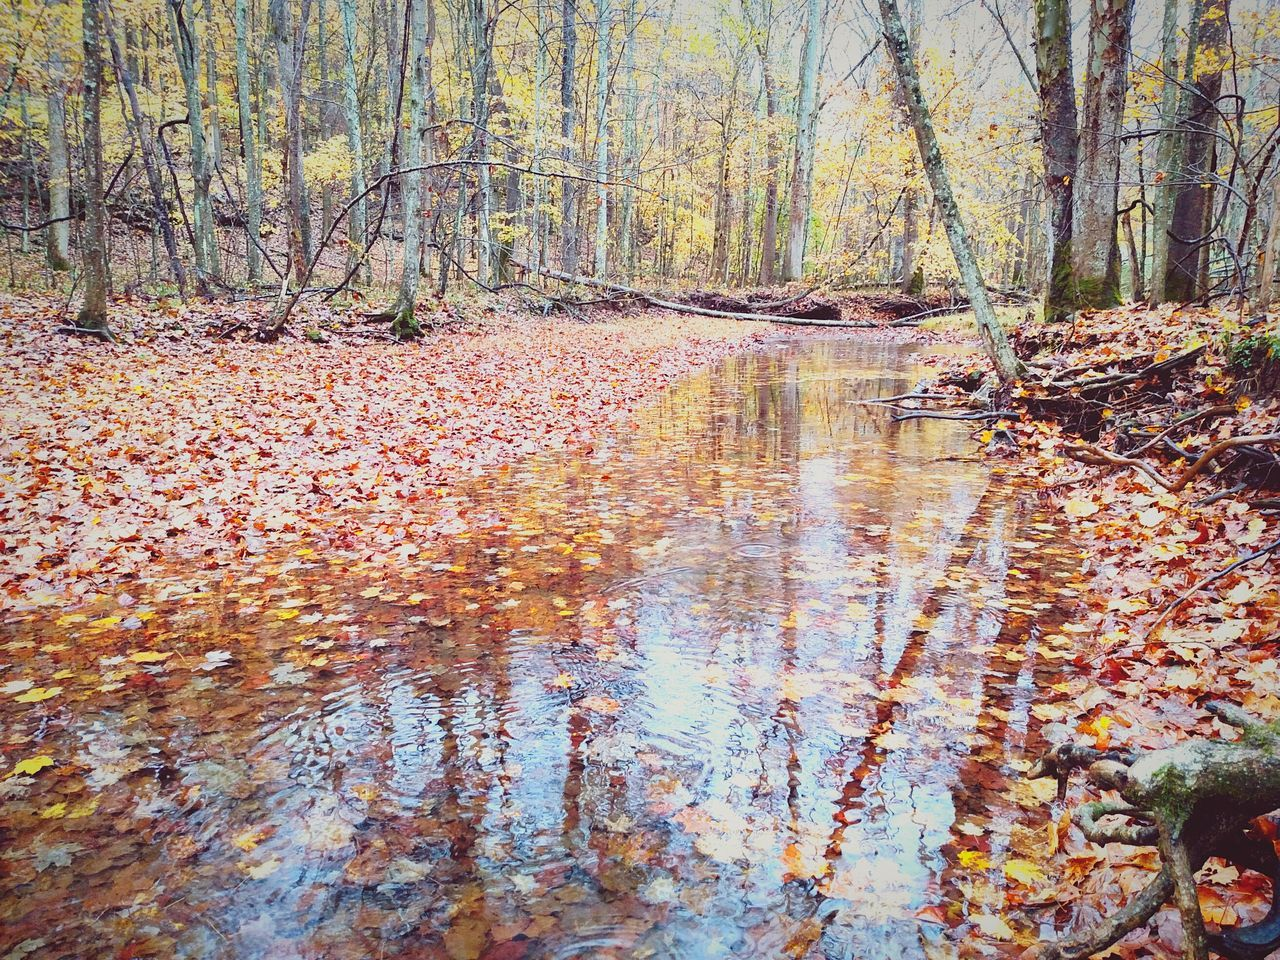 Autumn Colors Fall Leaves Creek Water Reflections Fallen Leaves Taking Photos Nature EyeEm Best Shots Trees Beautiful Colors Hello World Mobilephotography Westvirginia Exploringpaidoff